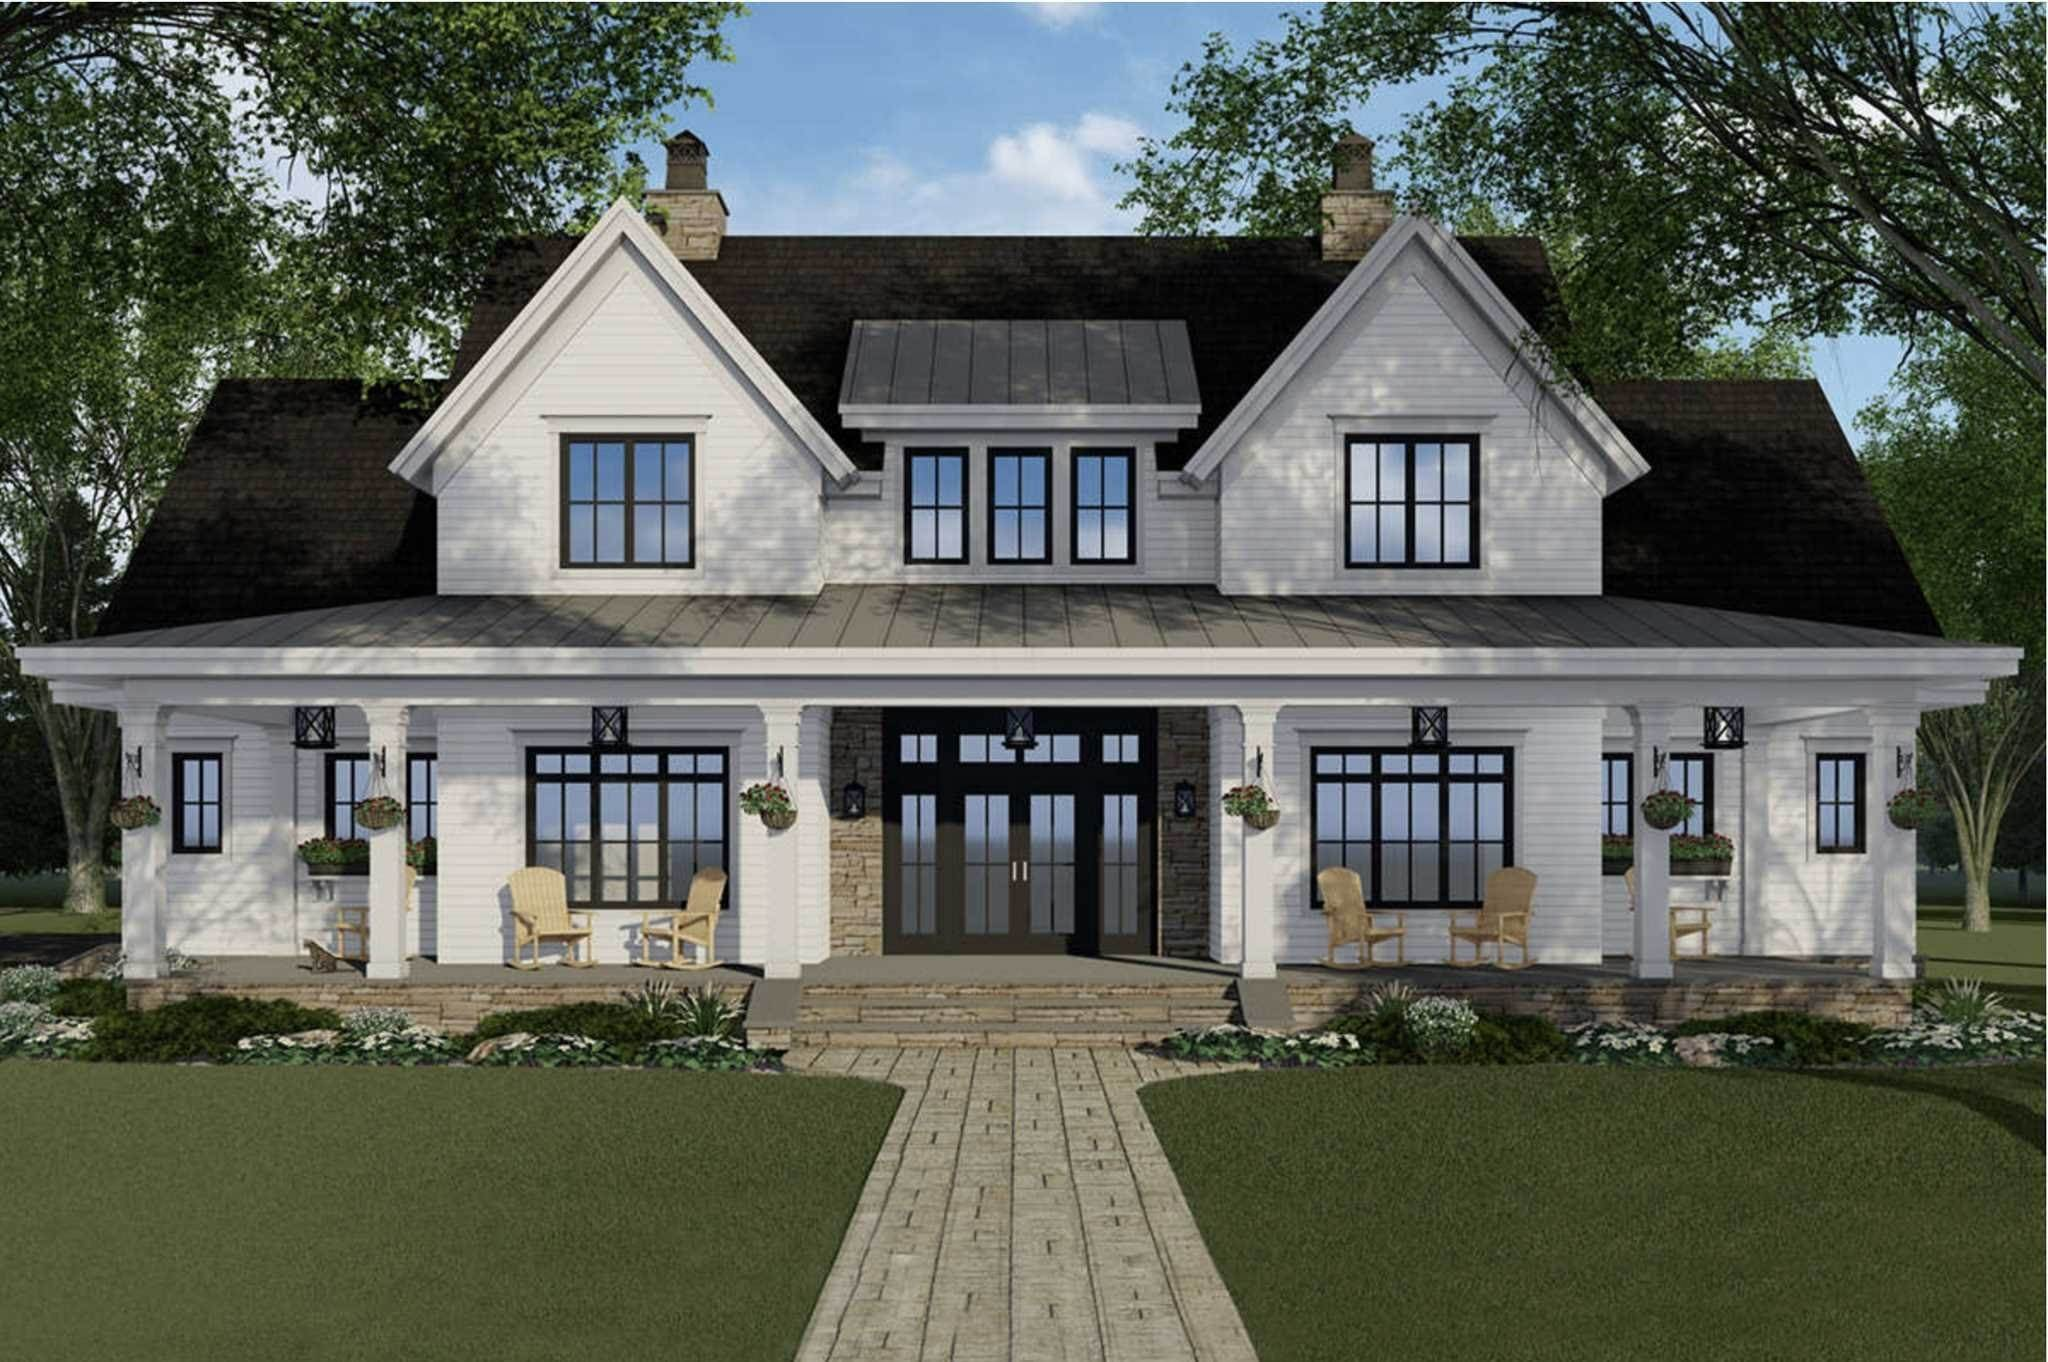 Single Family Homes for Sale at 1 HAIFA Road Wappinger, New York 12569 United States